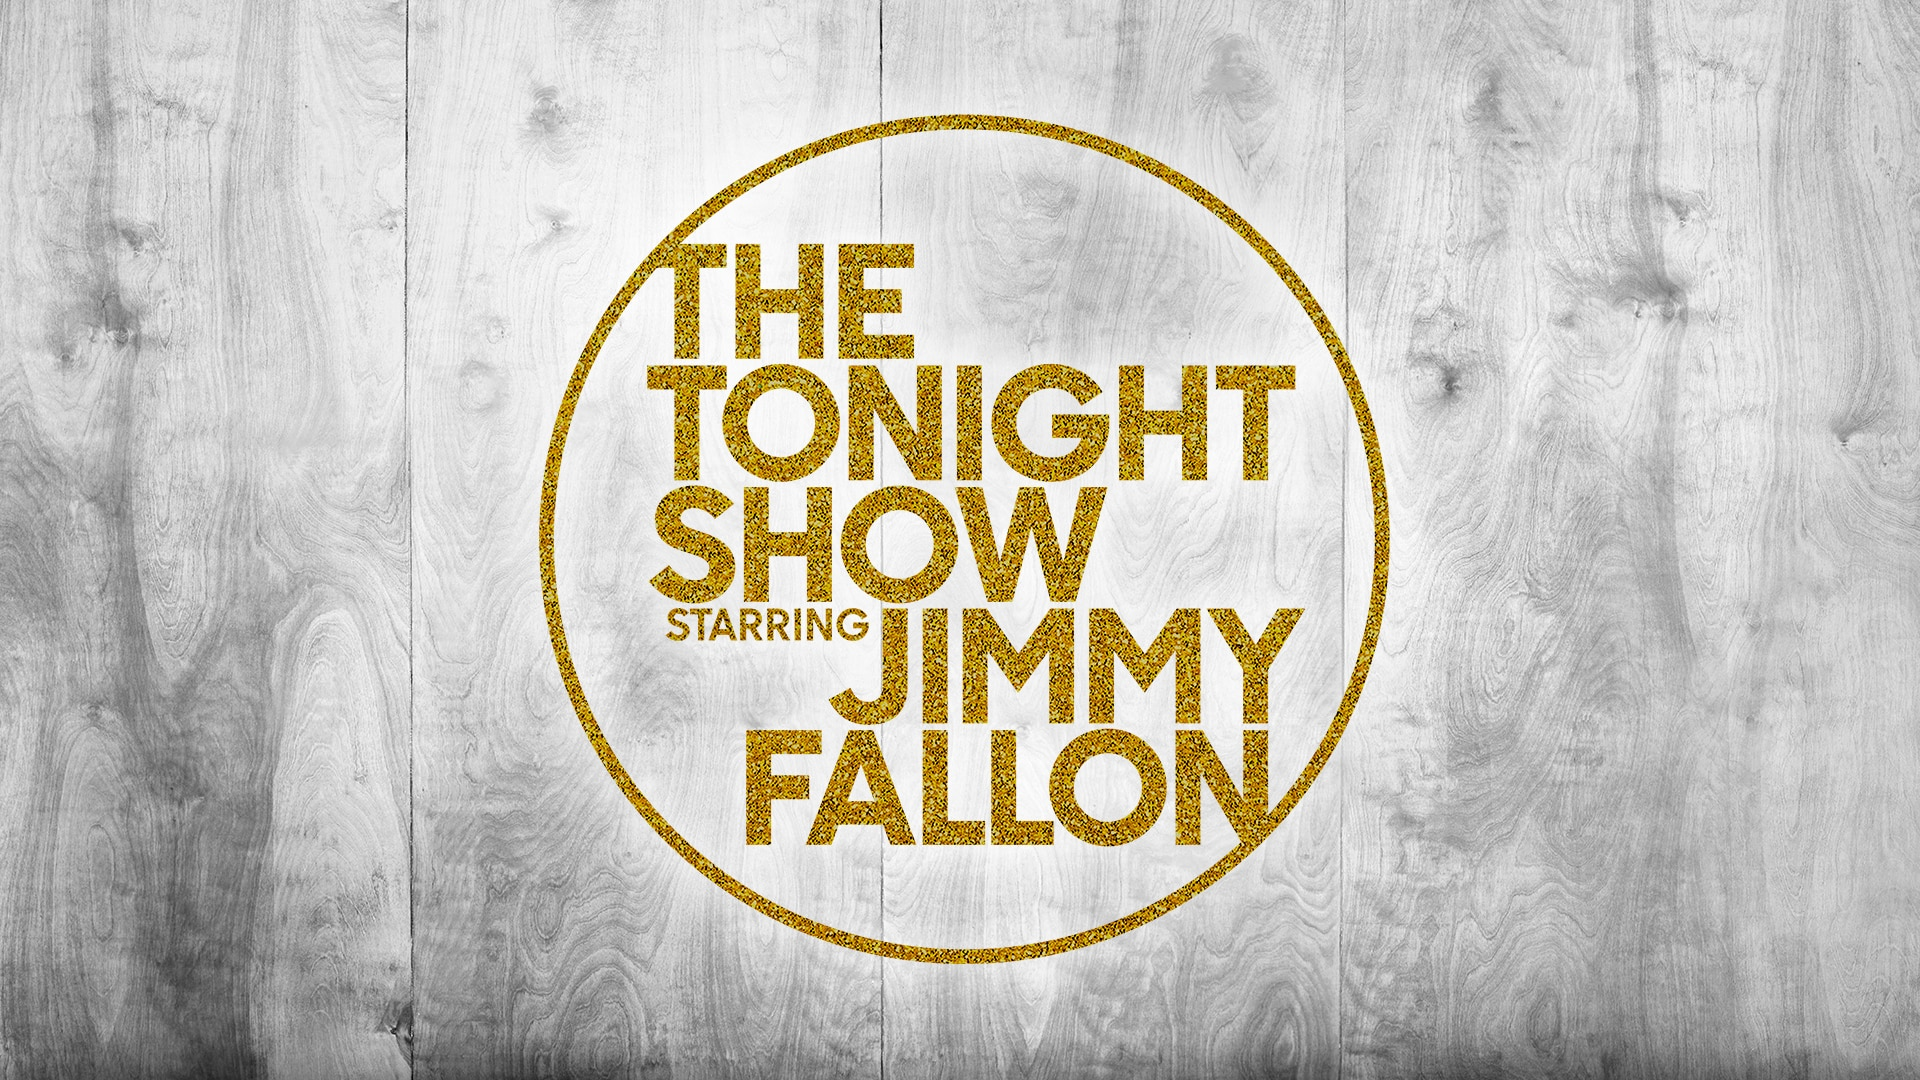 The tonight show with jay leno epic meal time